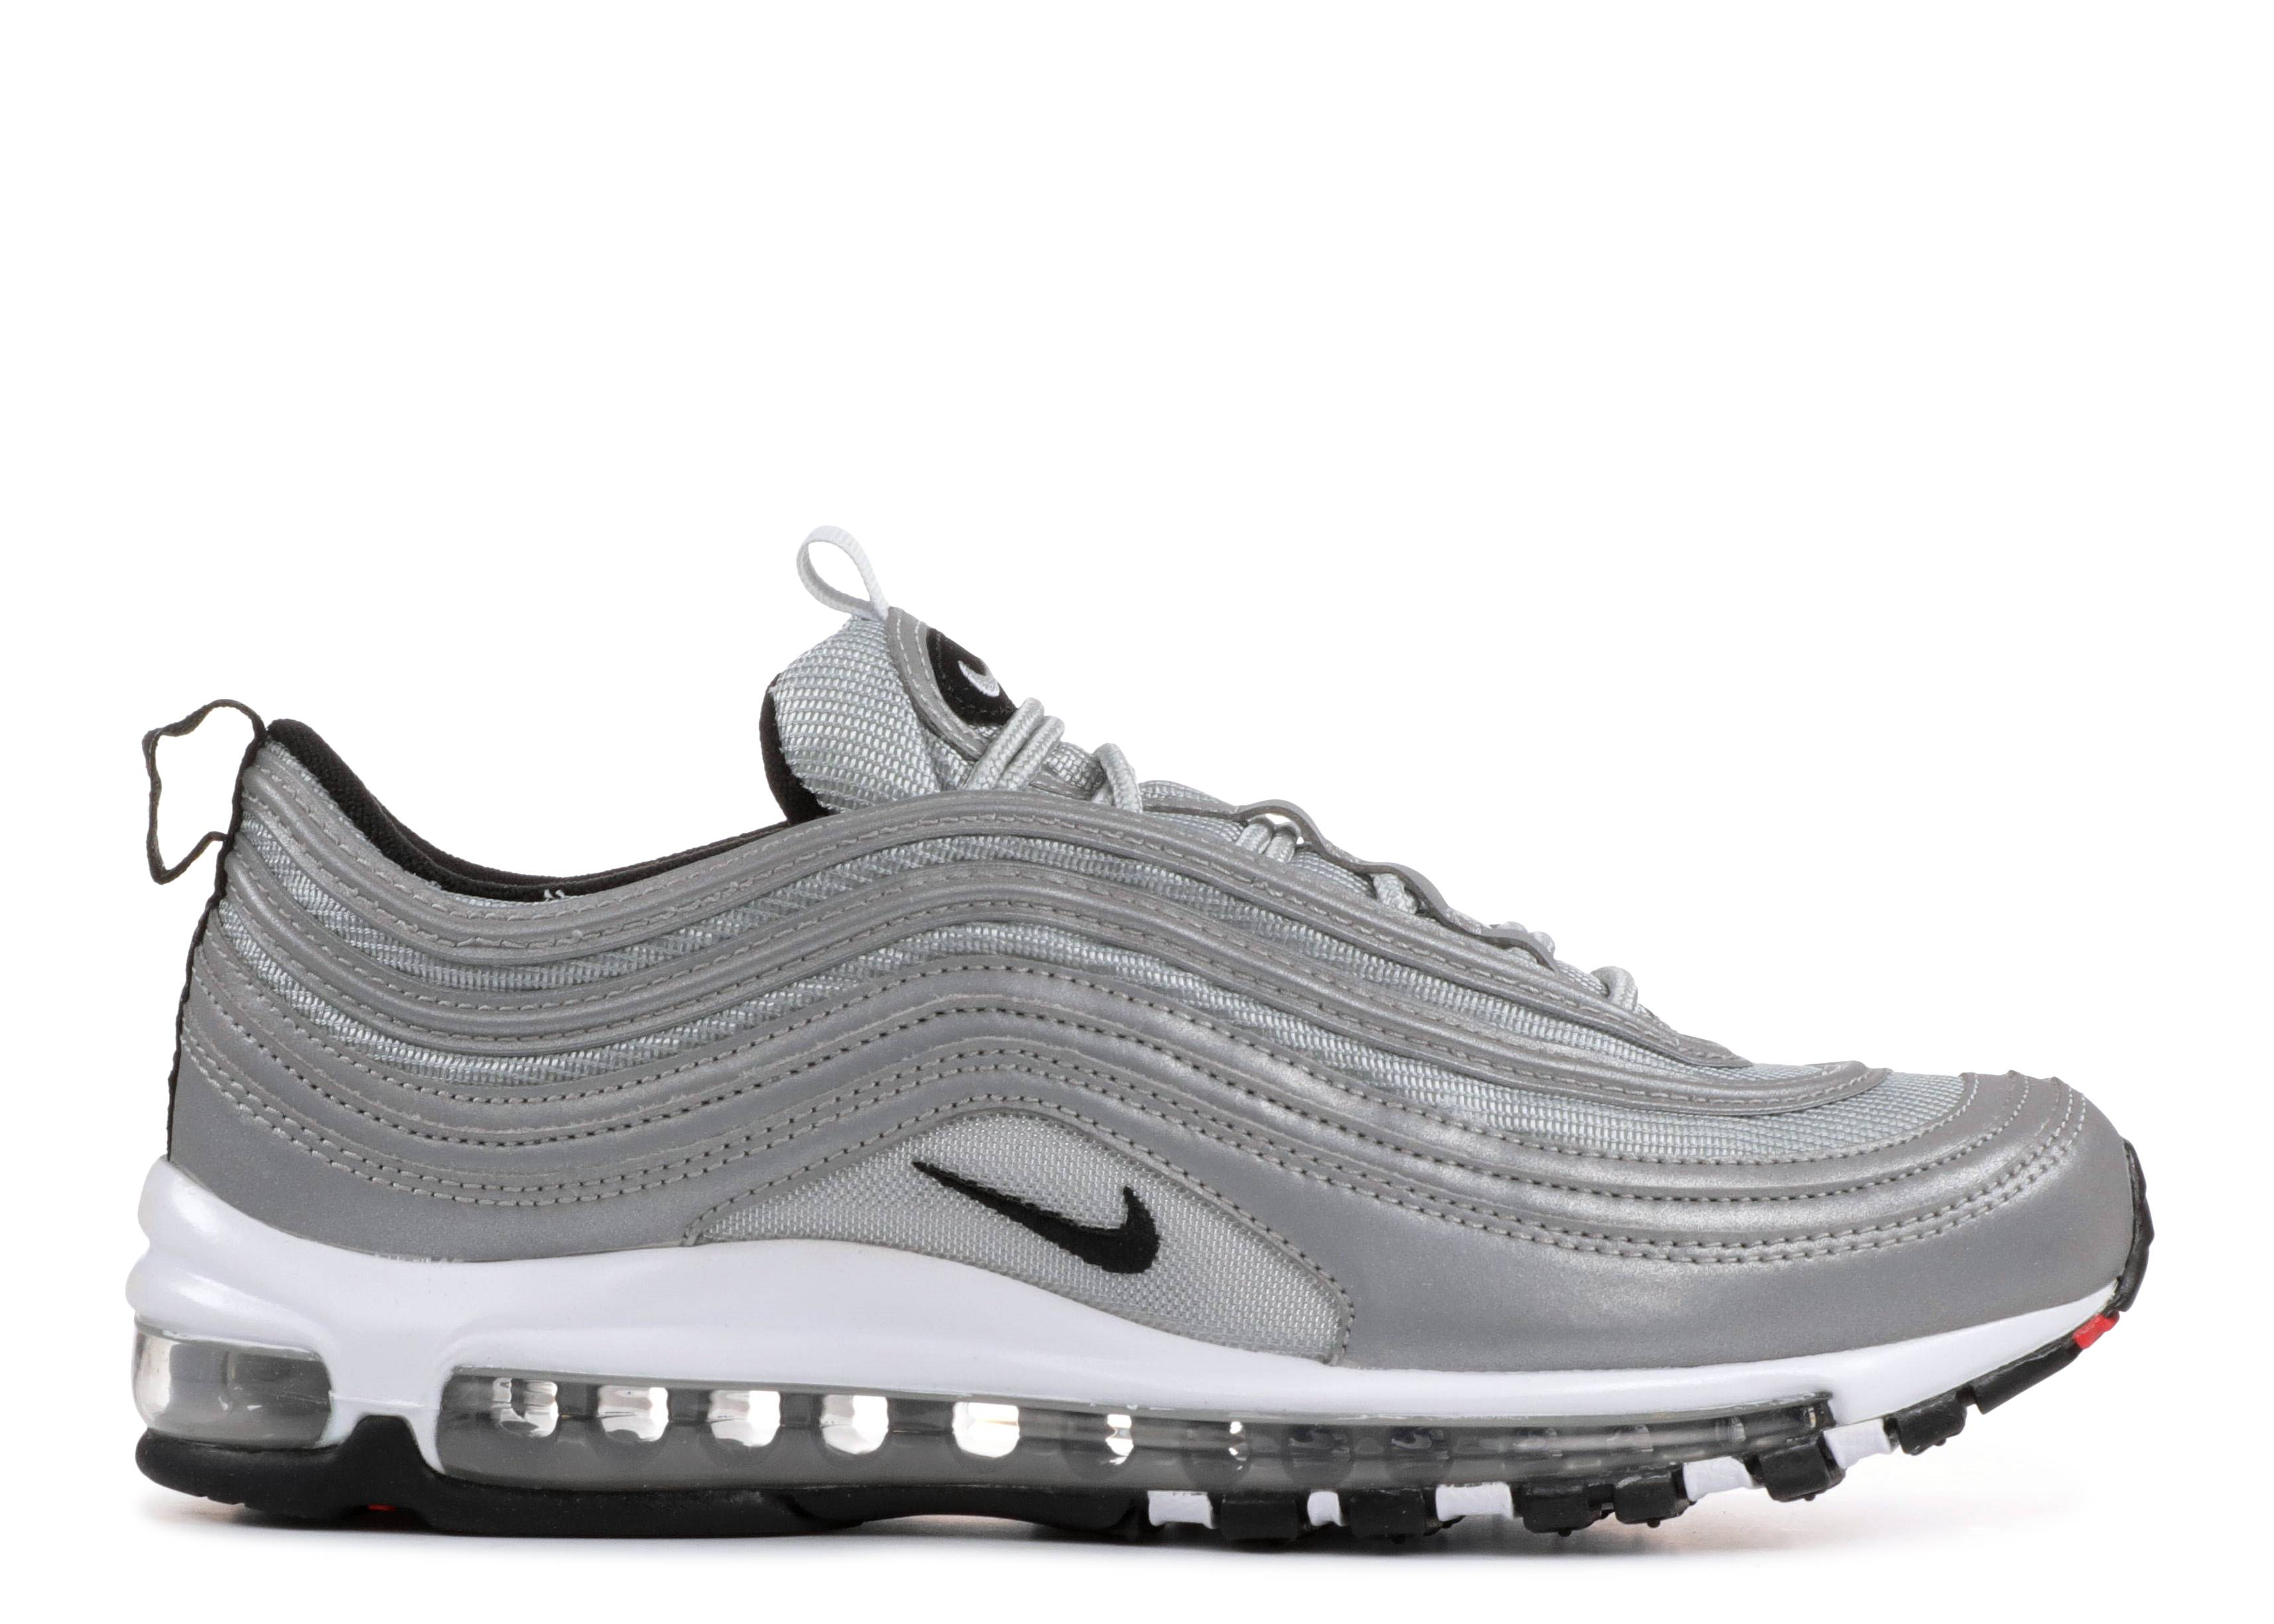 nike air max 97 reflective trainer